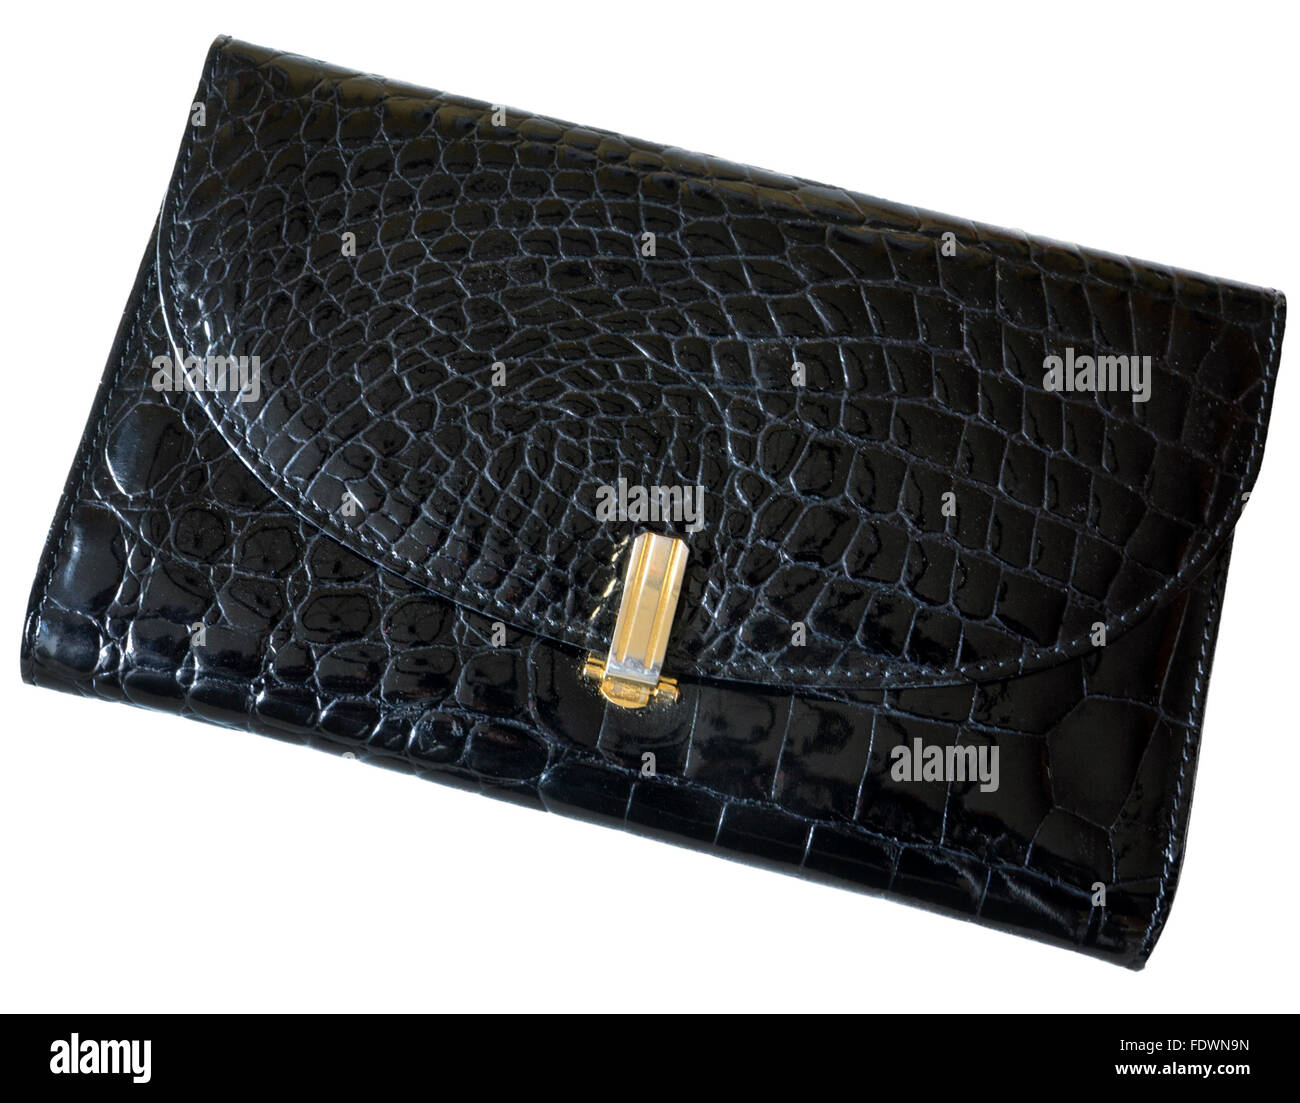 Black crocodile skin clutch bag isolated on white background.  Model Release: No.  Property Release: No. - Stock Image